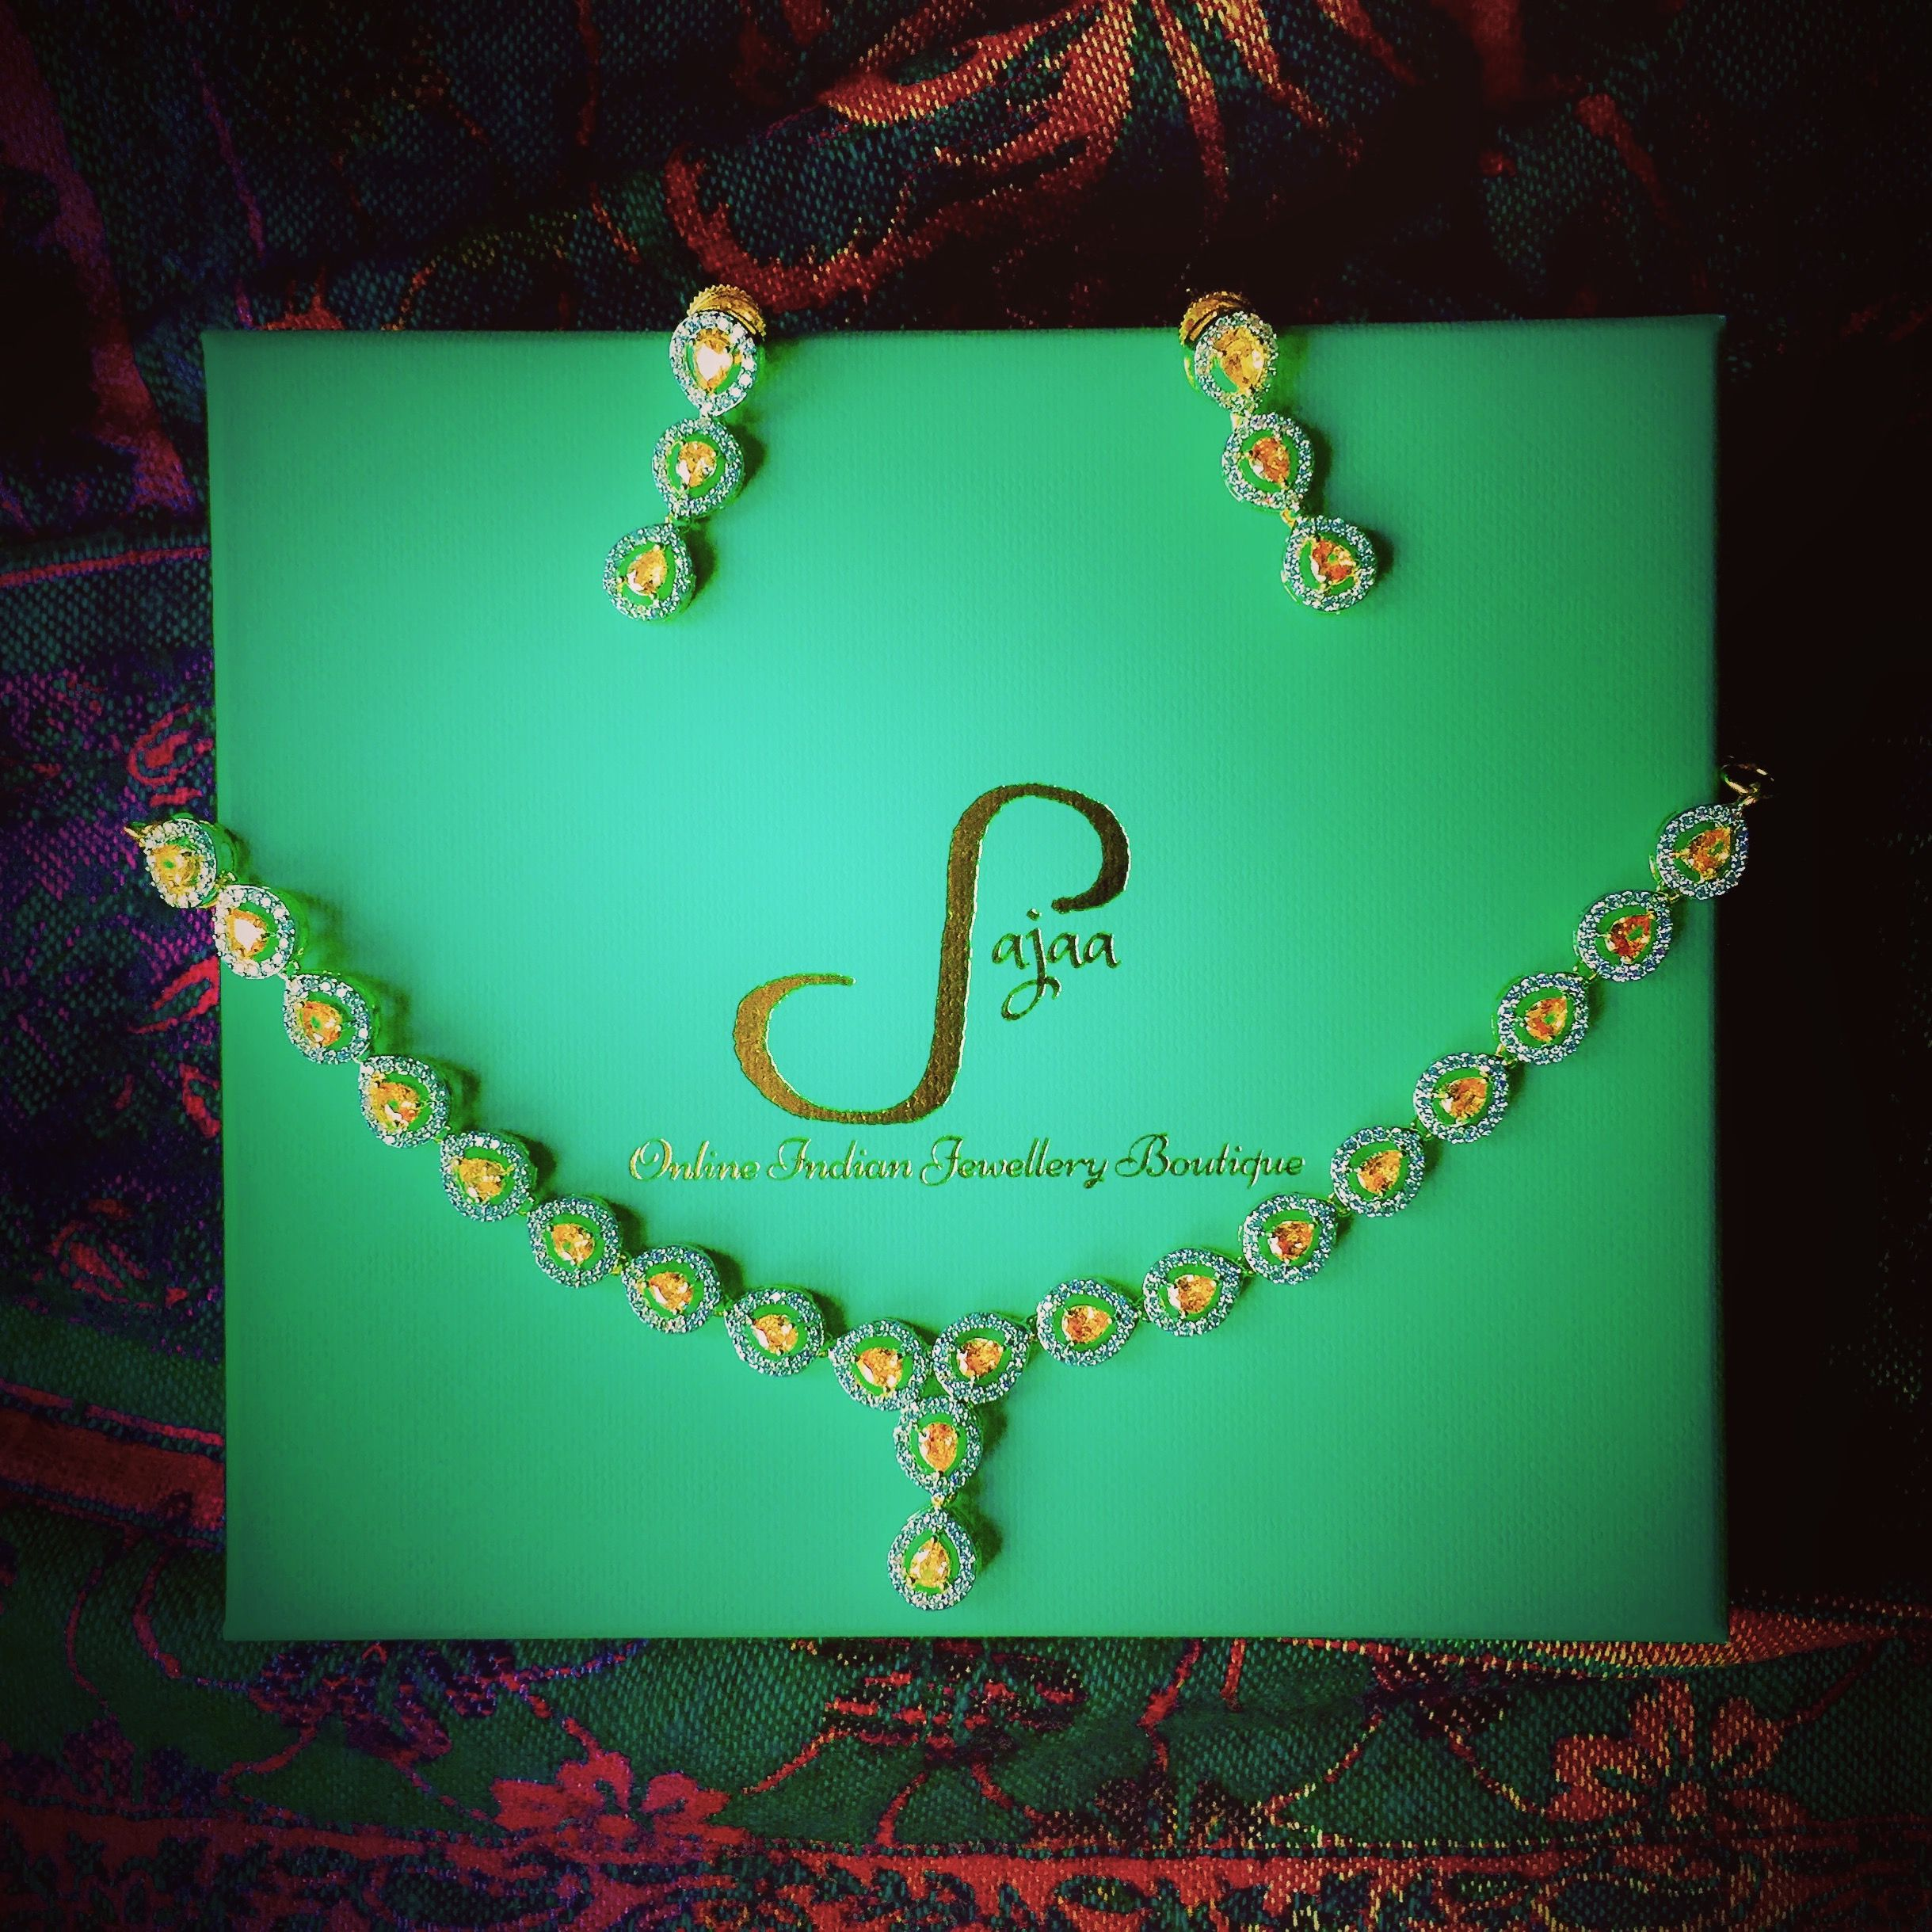 Elegant Gold Plated American Diamond Necklace And Earrings Set From Sajaa Online Indian Jewellery Boutique